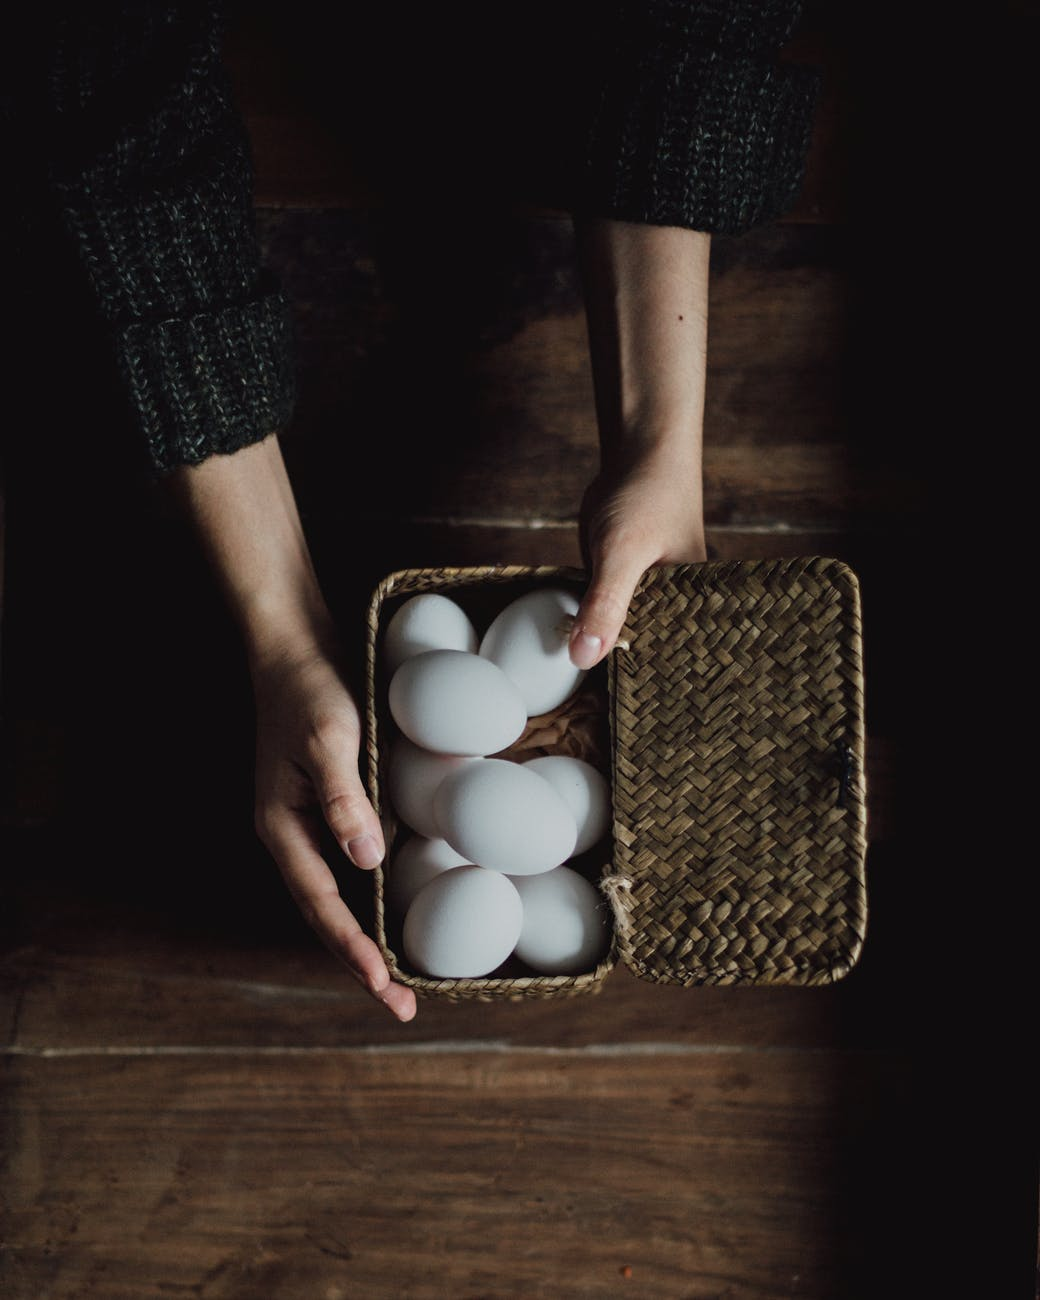 crop person holding chicken eggs in basket